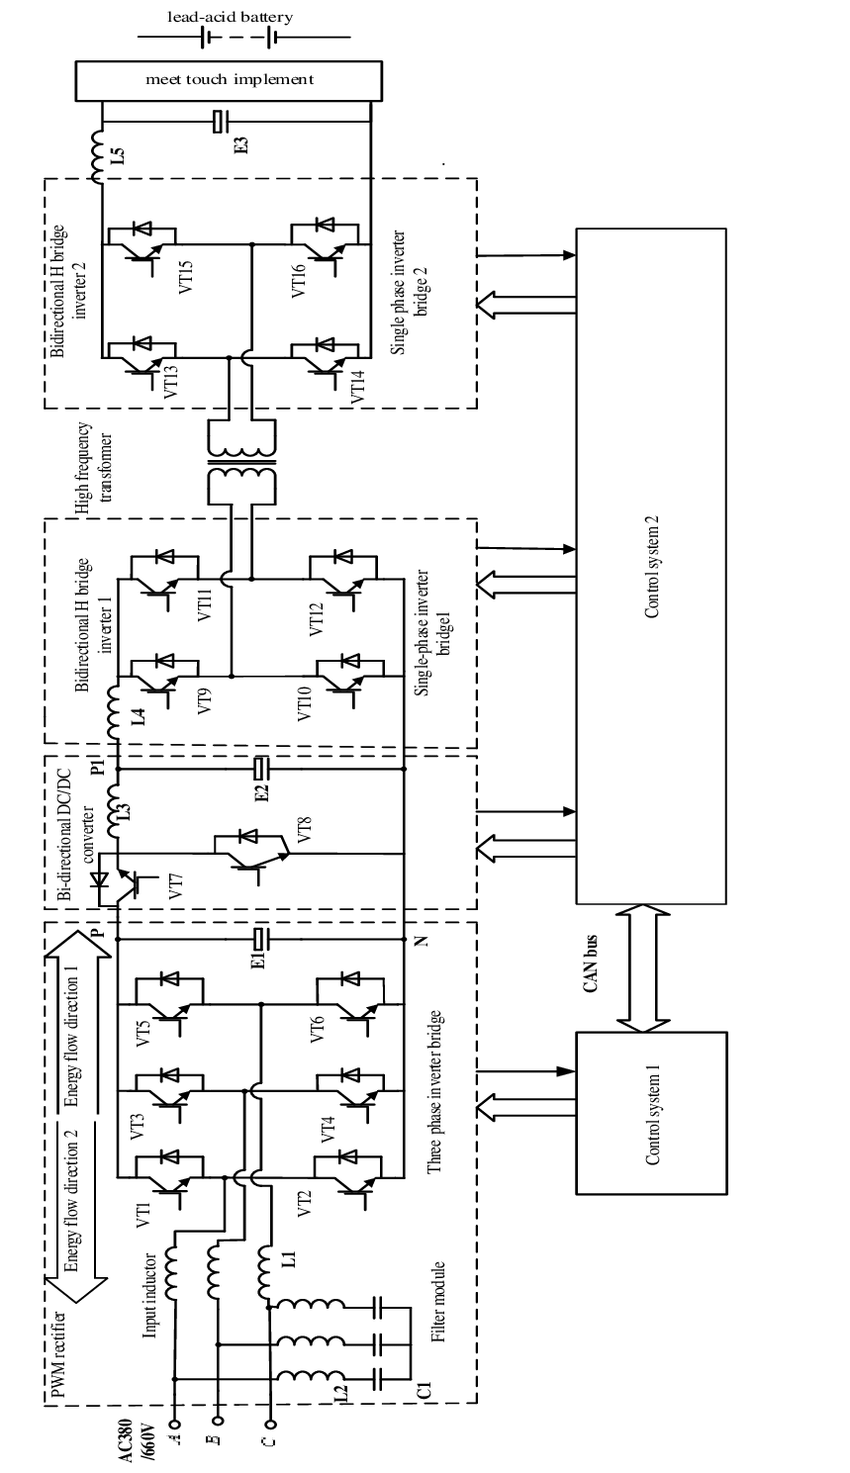 hight resolution of electrical schematic of a multi power unit intelligent charger fund project hebei provincial science and